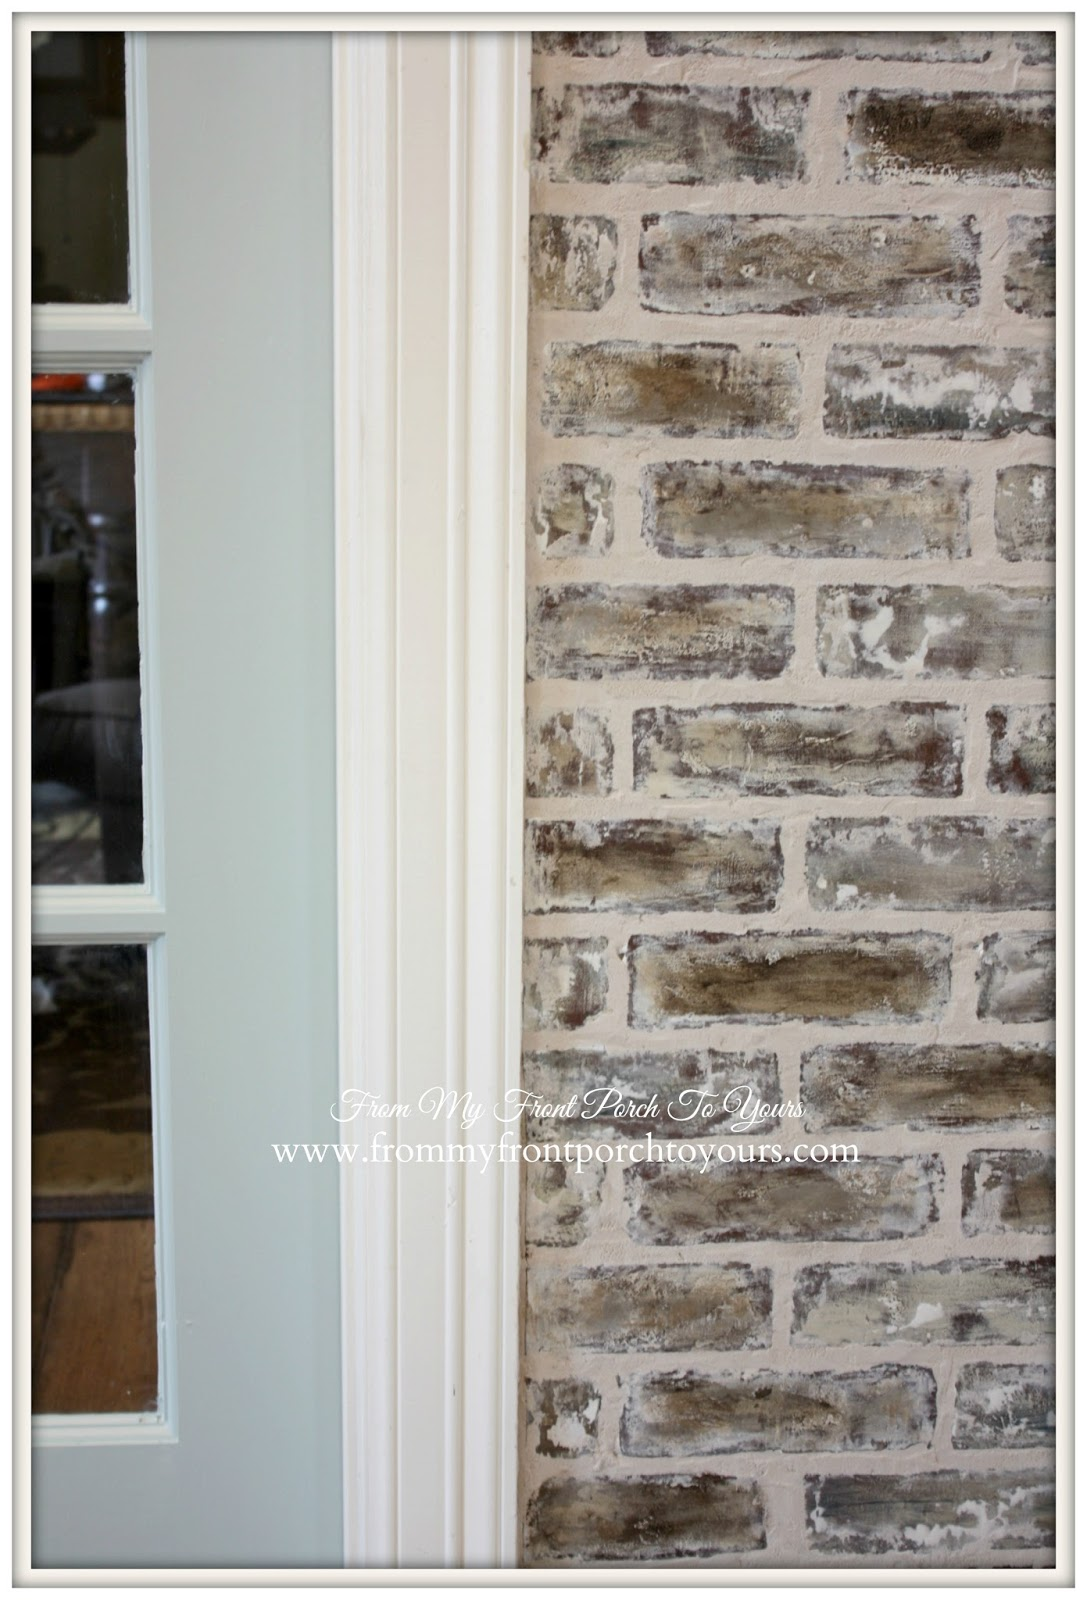 Faux Brick Wall Treatment- From My Front Porch To Yours